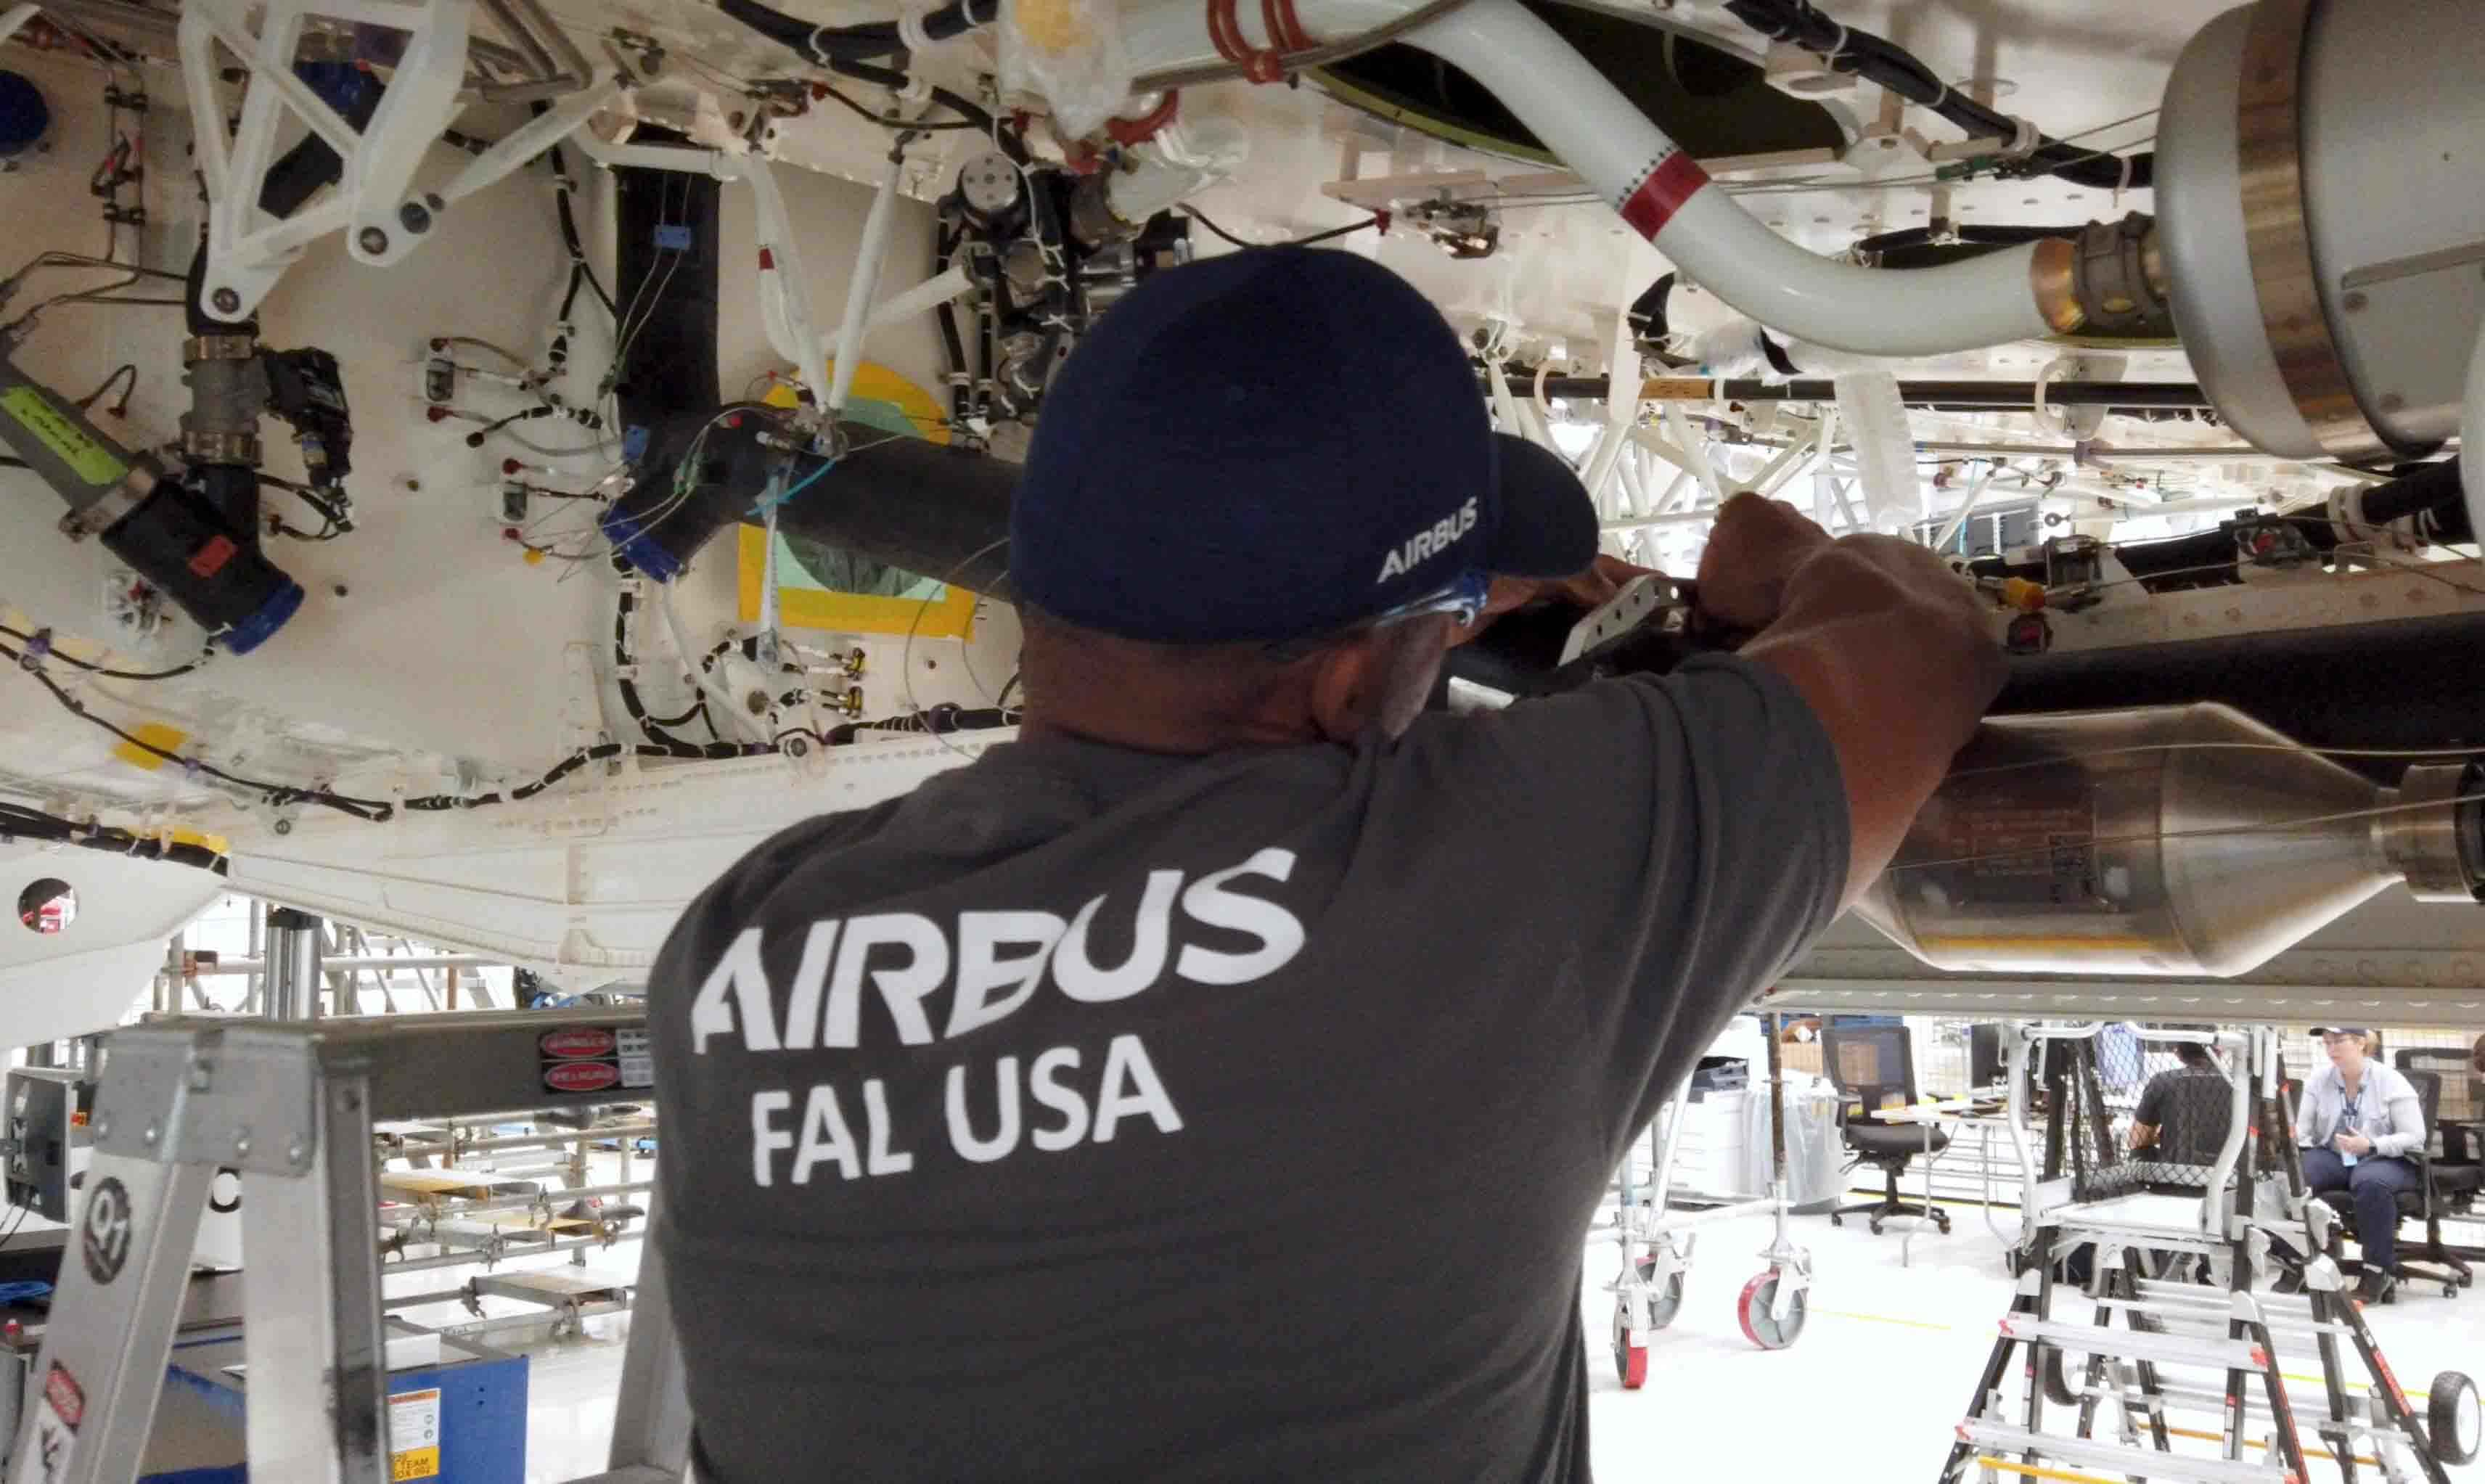 Airbus begins US production of A220 aircraft